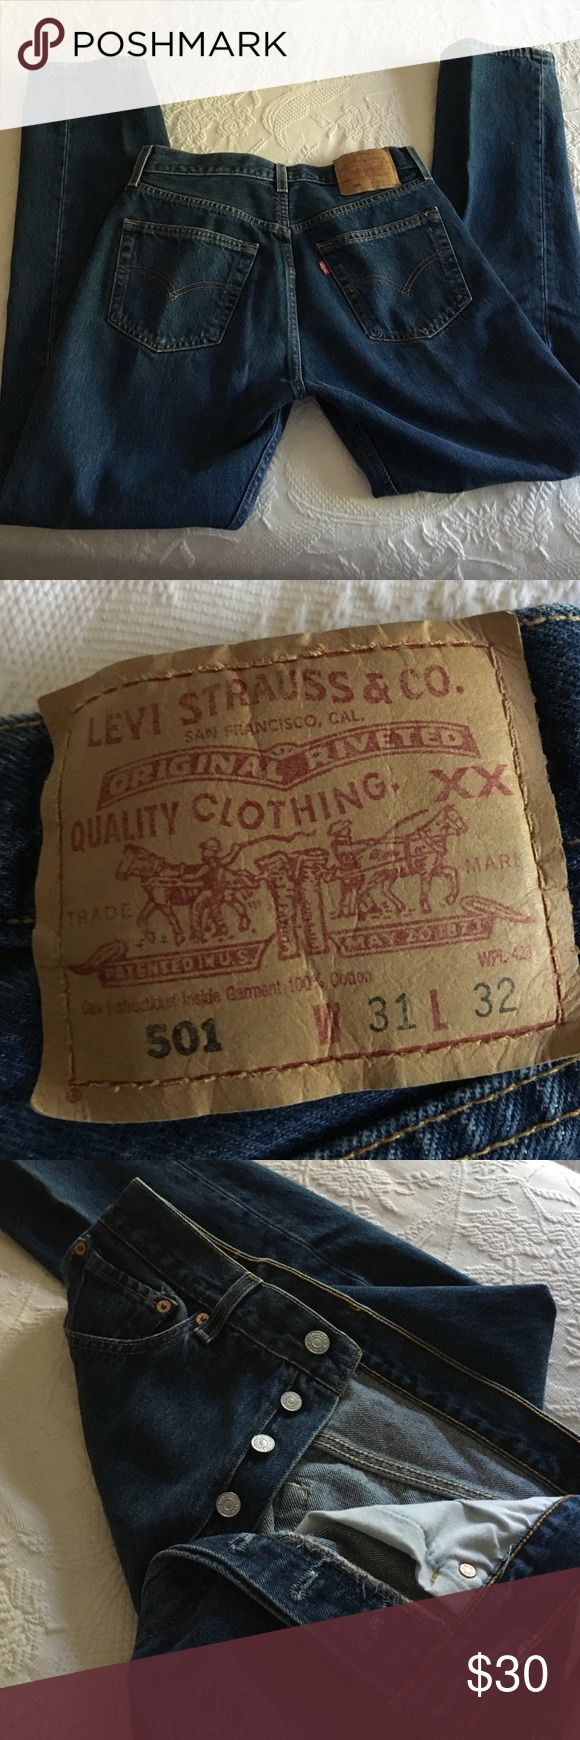 Women's or men's button fly Levi's 501 Good looking button fly jeans - straight leg- 31/32 Levi's Jeans Straight Leg